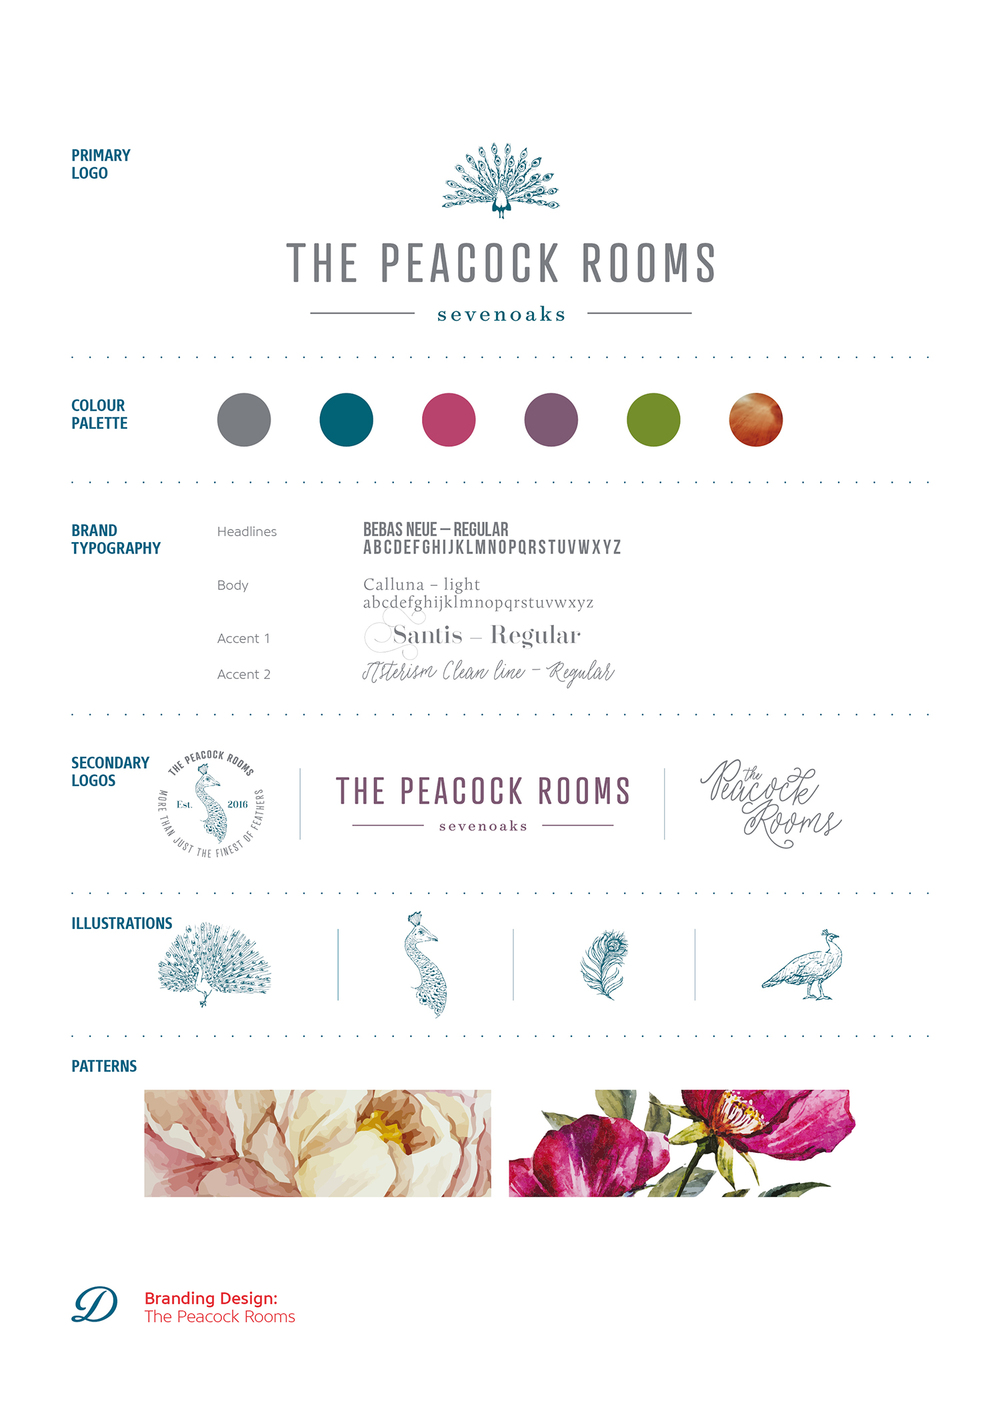 The Peacock Rooms Sevenoaks, branding and logo design by Ditto Creative brand stylists, Kent, brand board